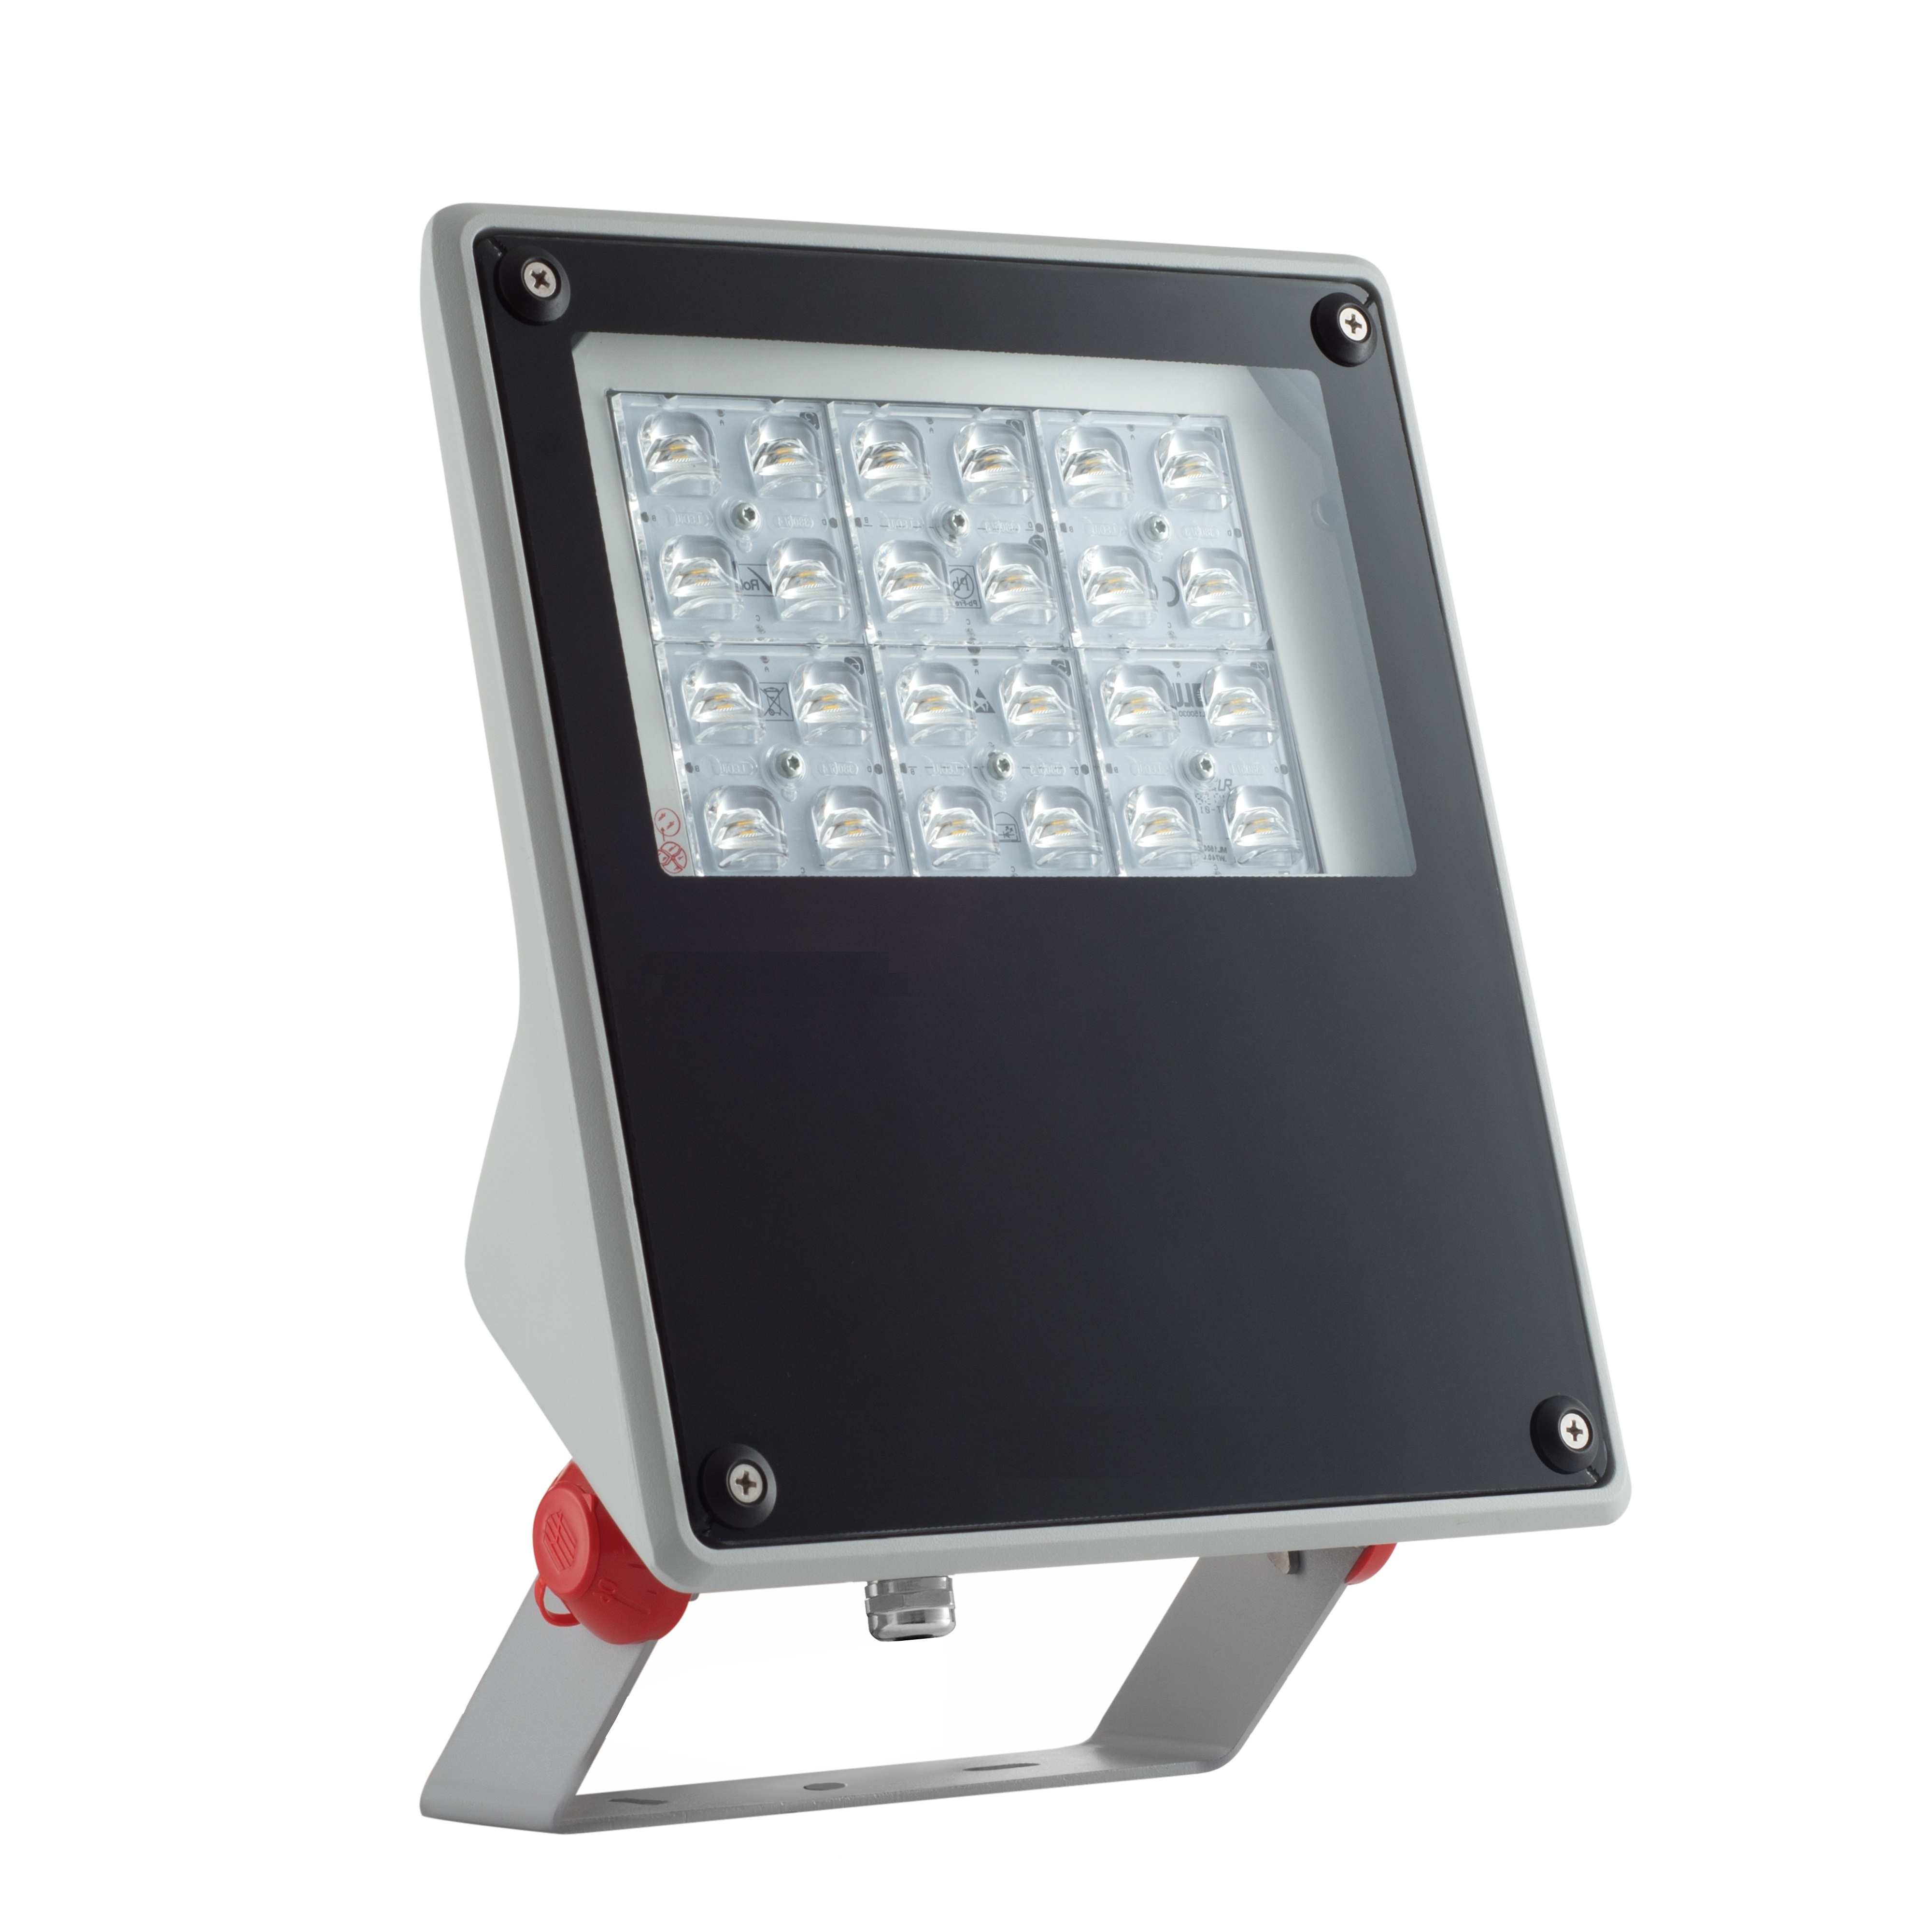 FORCA LED Mini 25W 3100lm 4000K EVG IP65 asymmetrisch grau